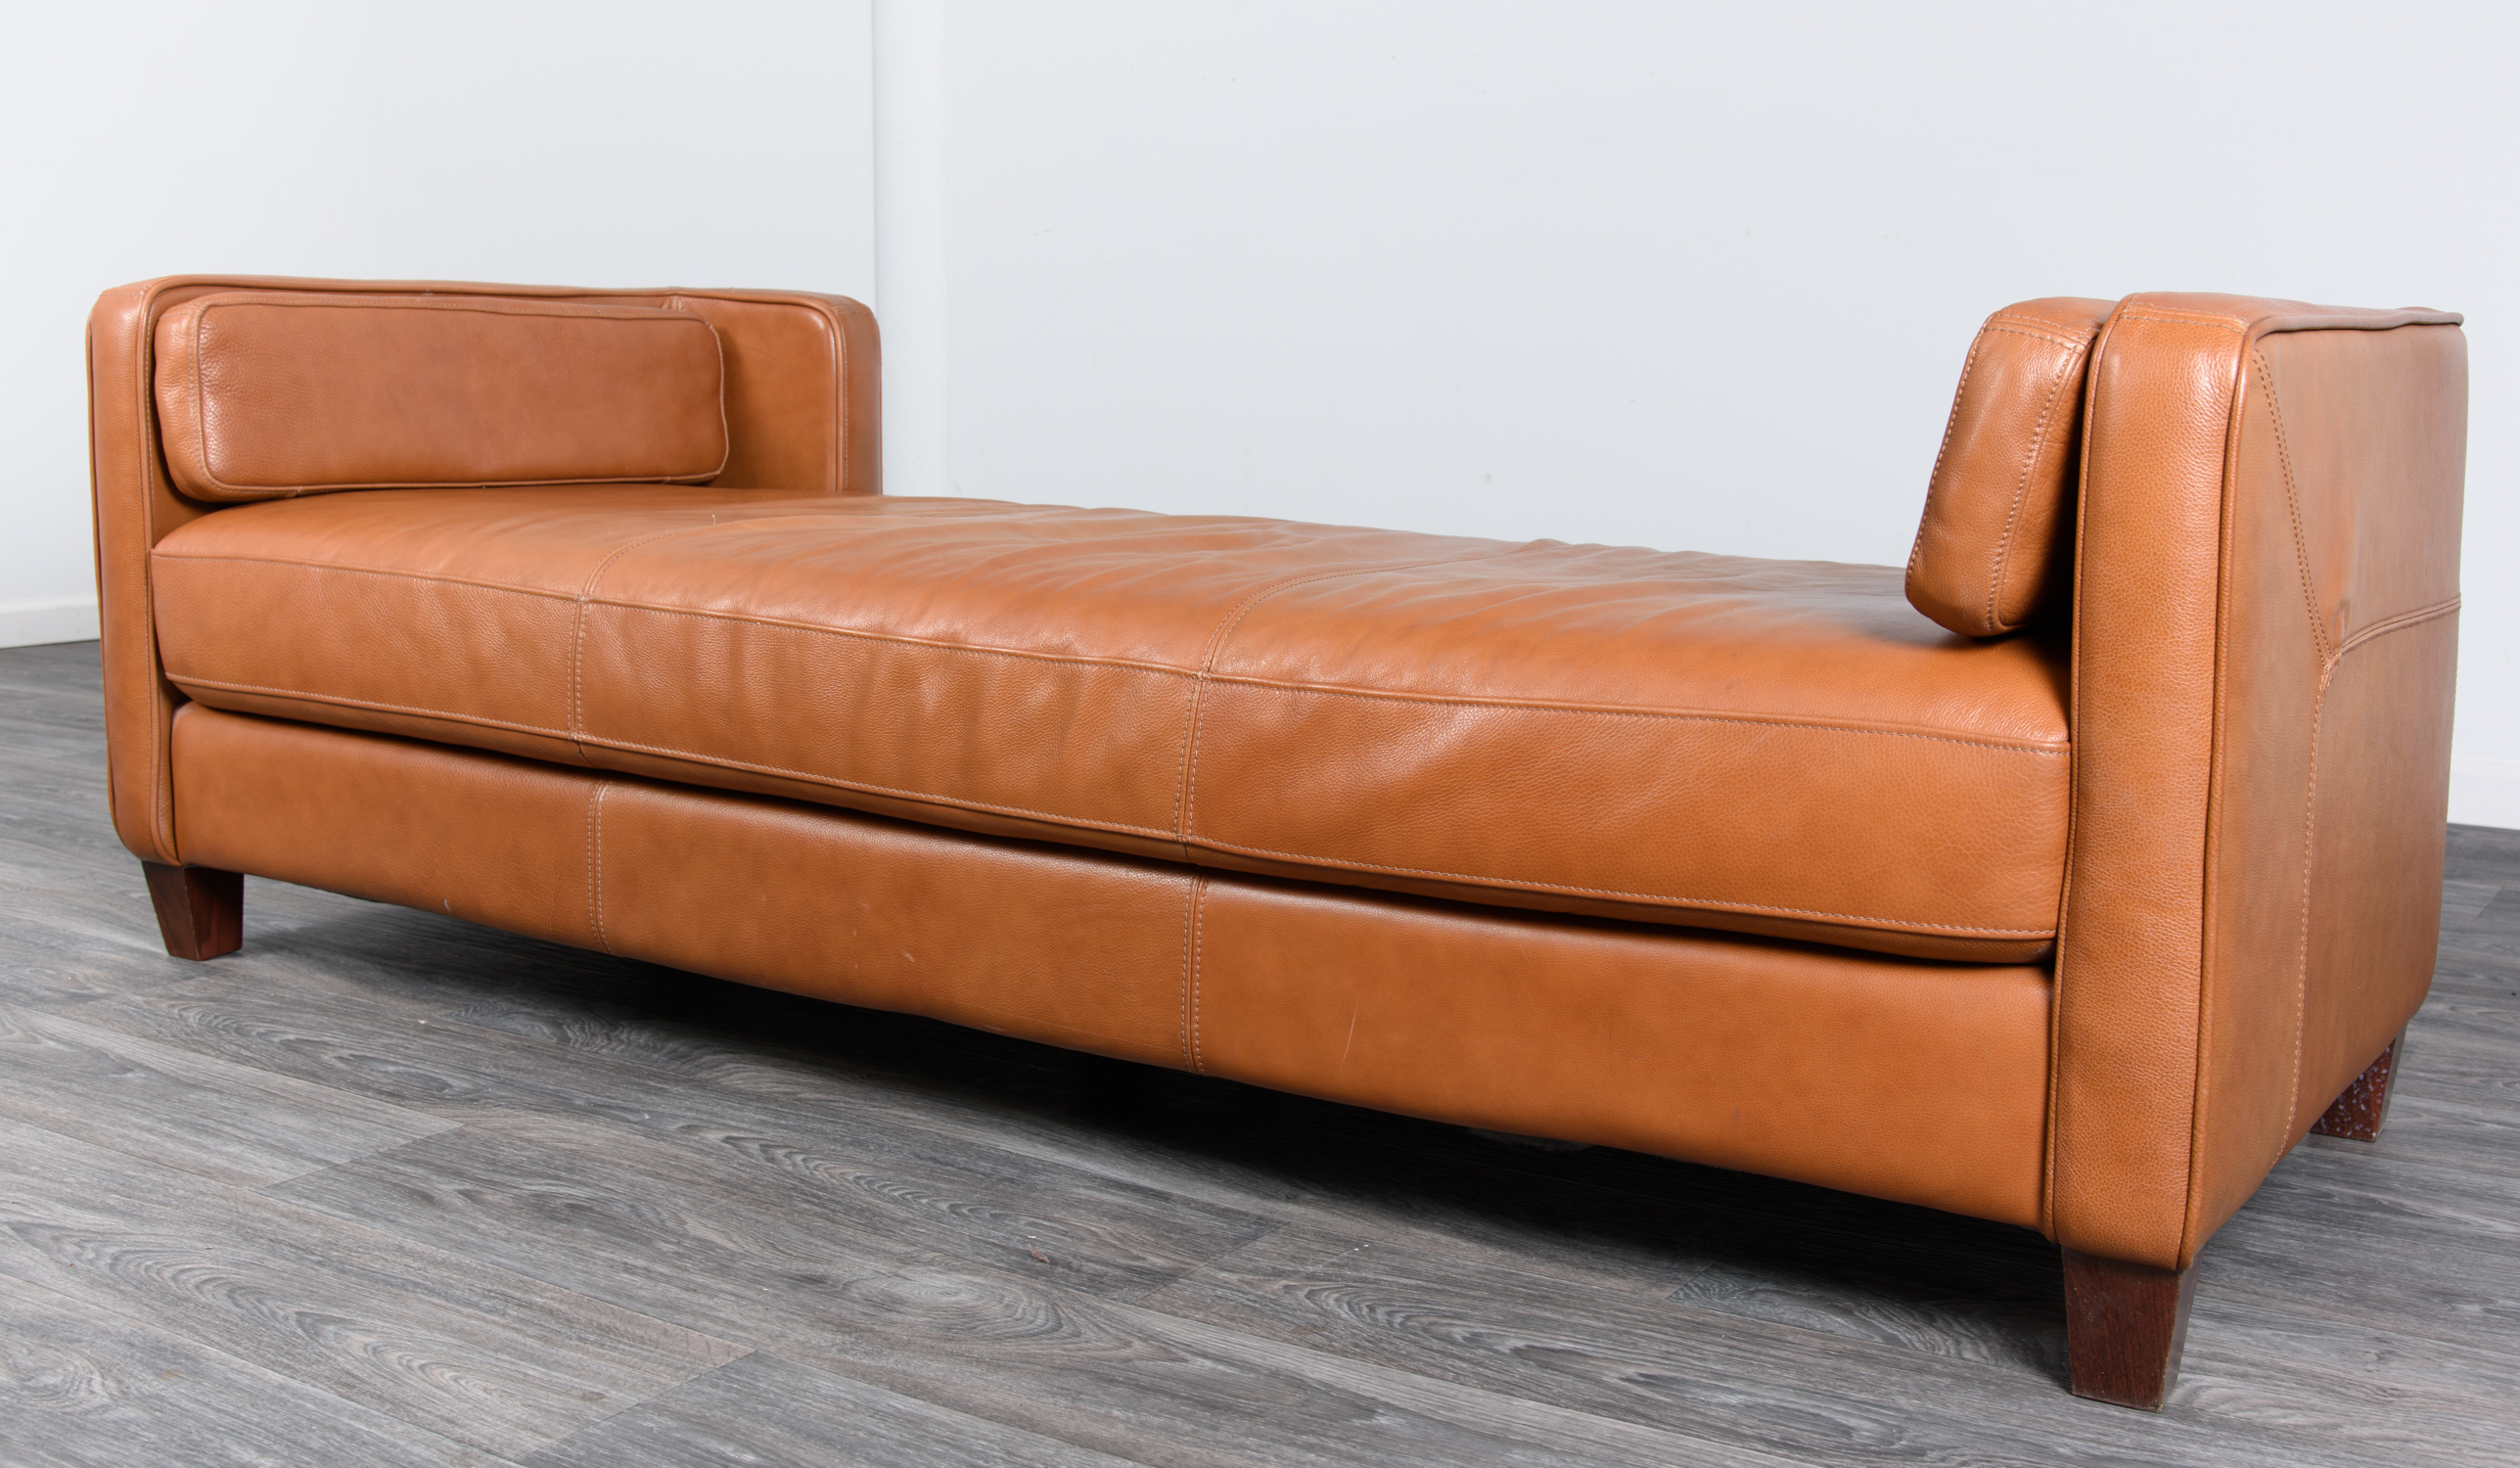 Lot Divani Chateau D Ax Italian Leather Sofa